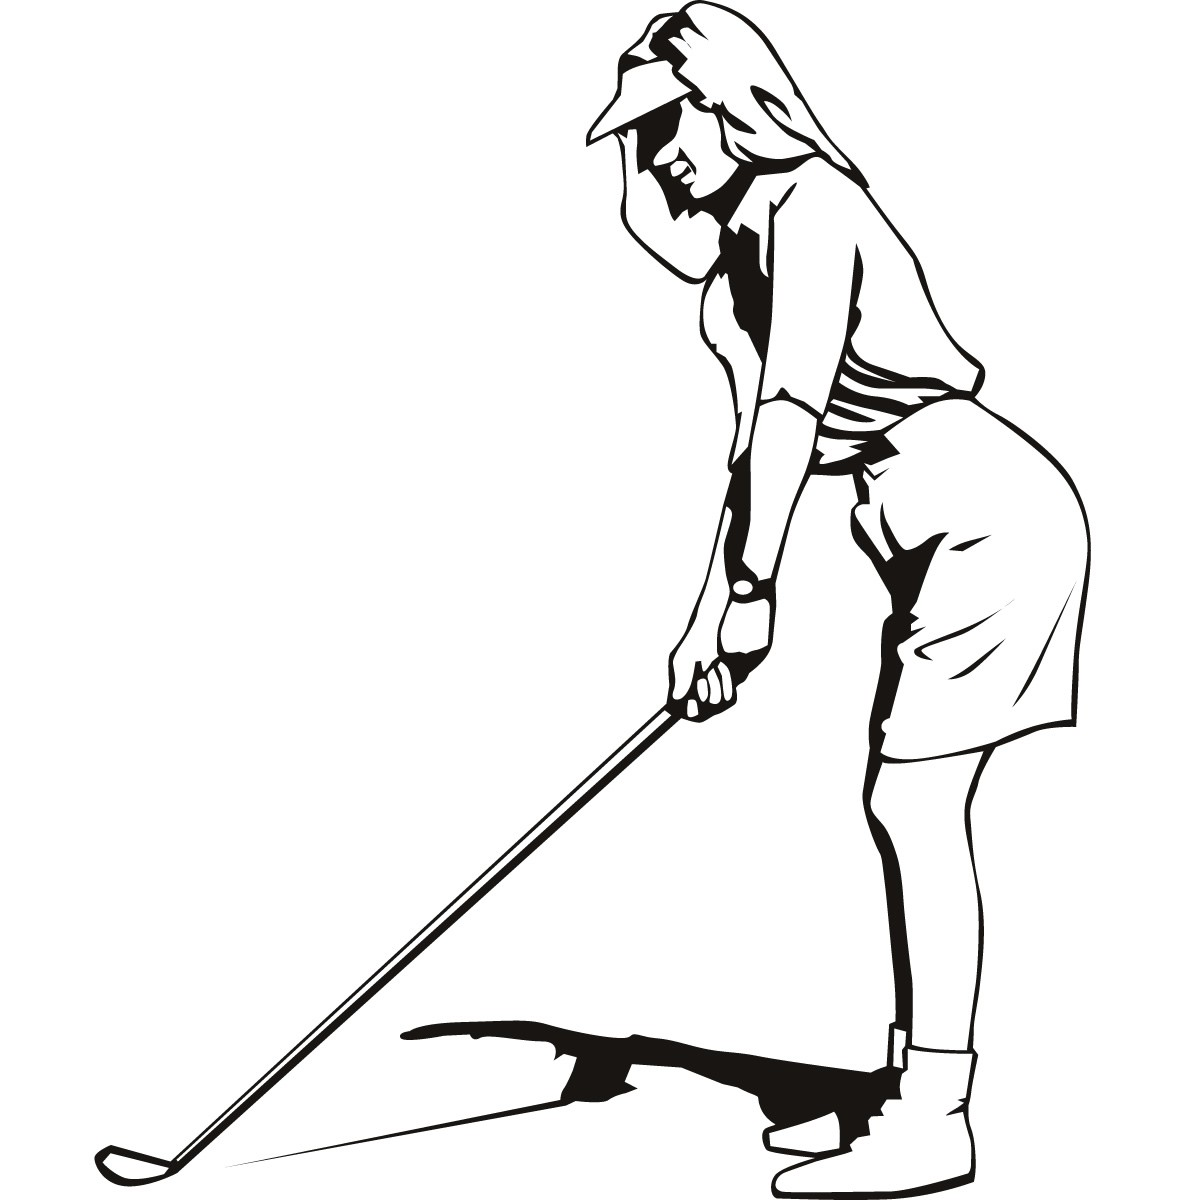 Ladies golf clipart images clipart black and white download Free Girls Golf Cliparts, Download Free Clip Art, Free Clip ... clipart black and white download